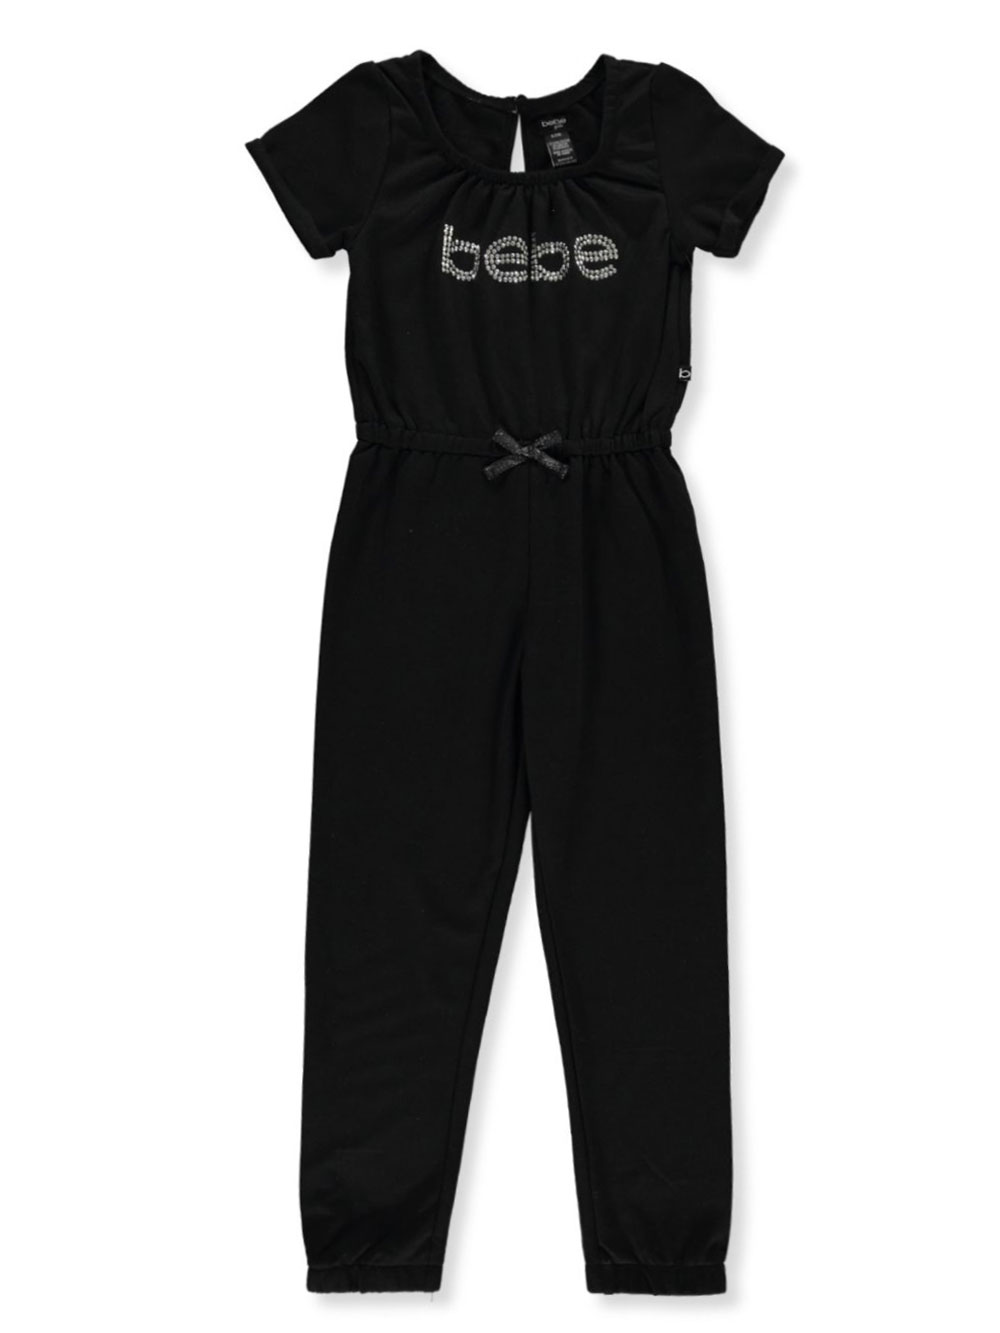 Size 5 Rompers Jumpsuits for Girls